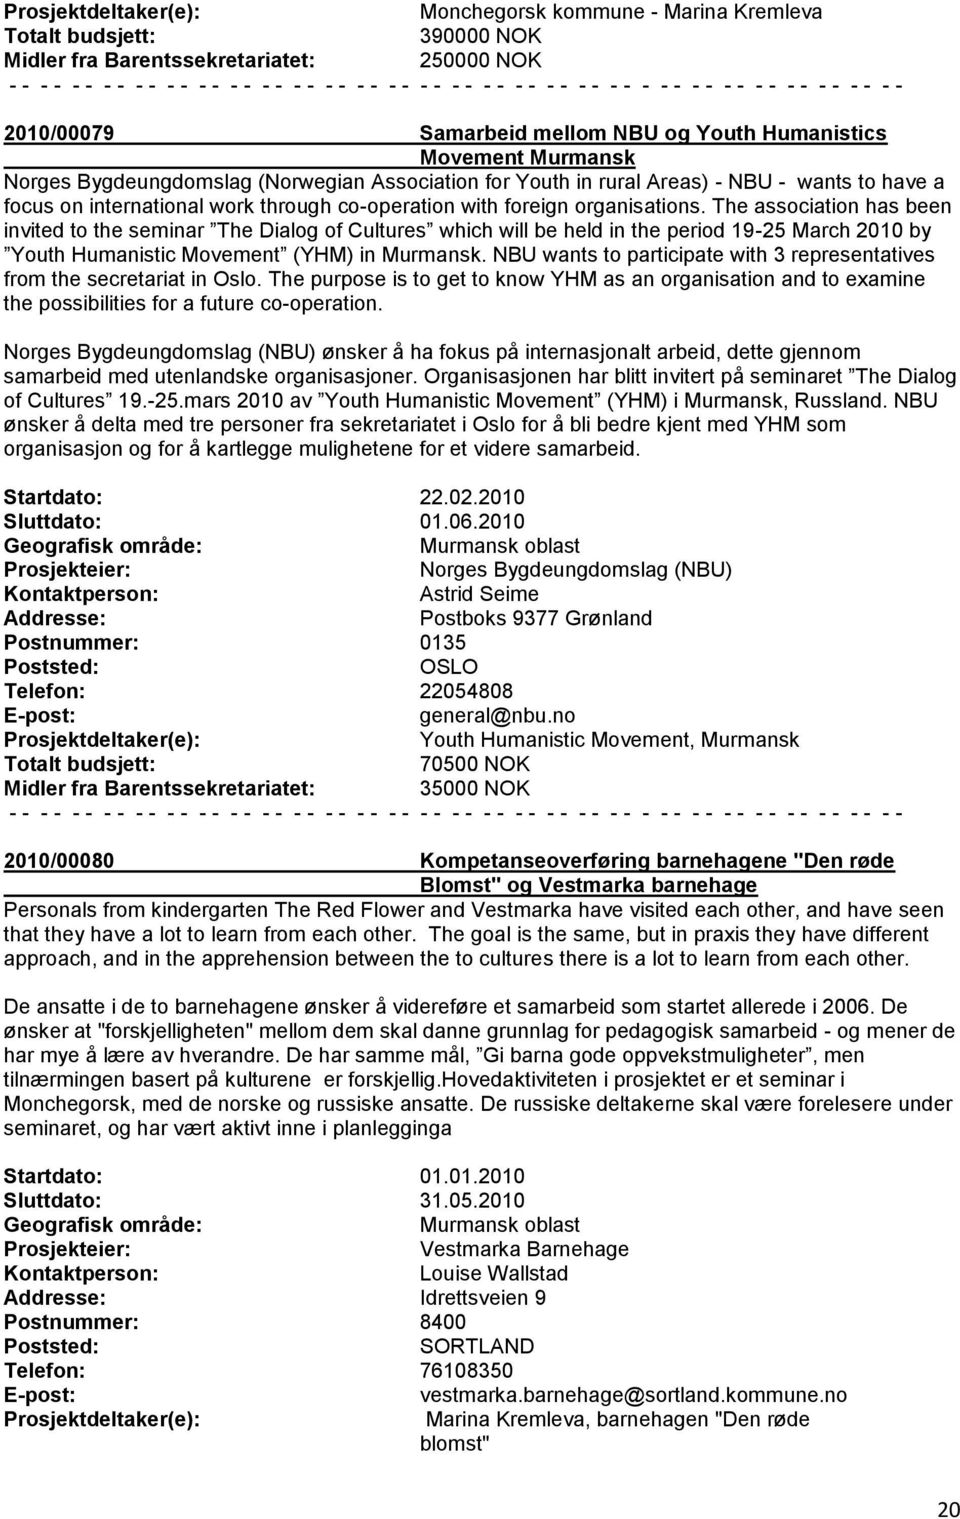 The association has been invited to the seminar The Dialog of Cultures which will be held in the period 19-25 March 2010 by Youth Humanistic Movement (YHM) in Murmansk.